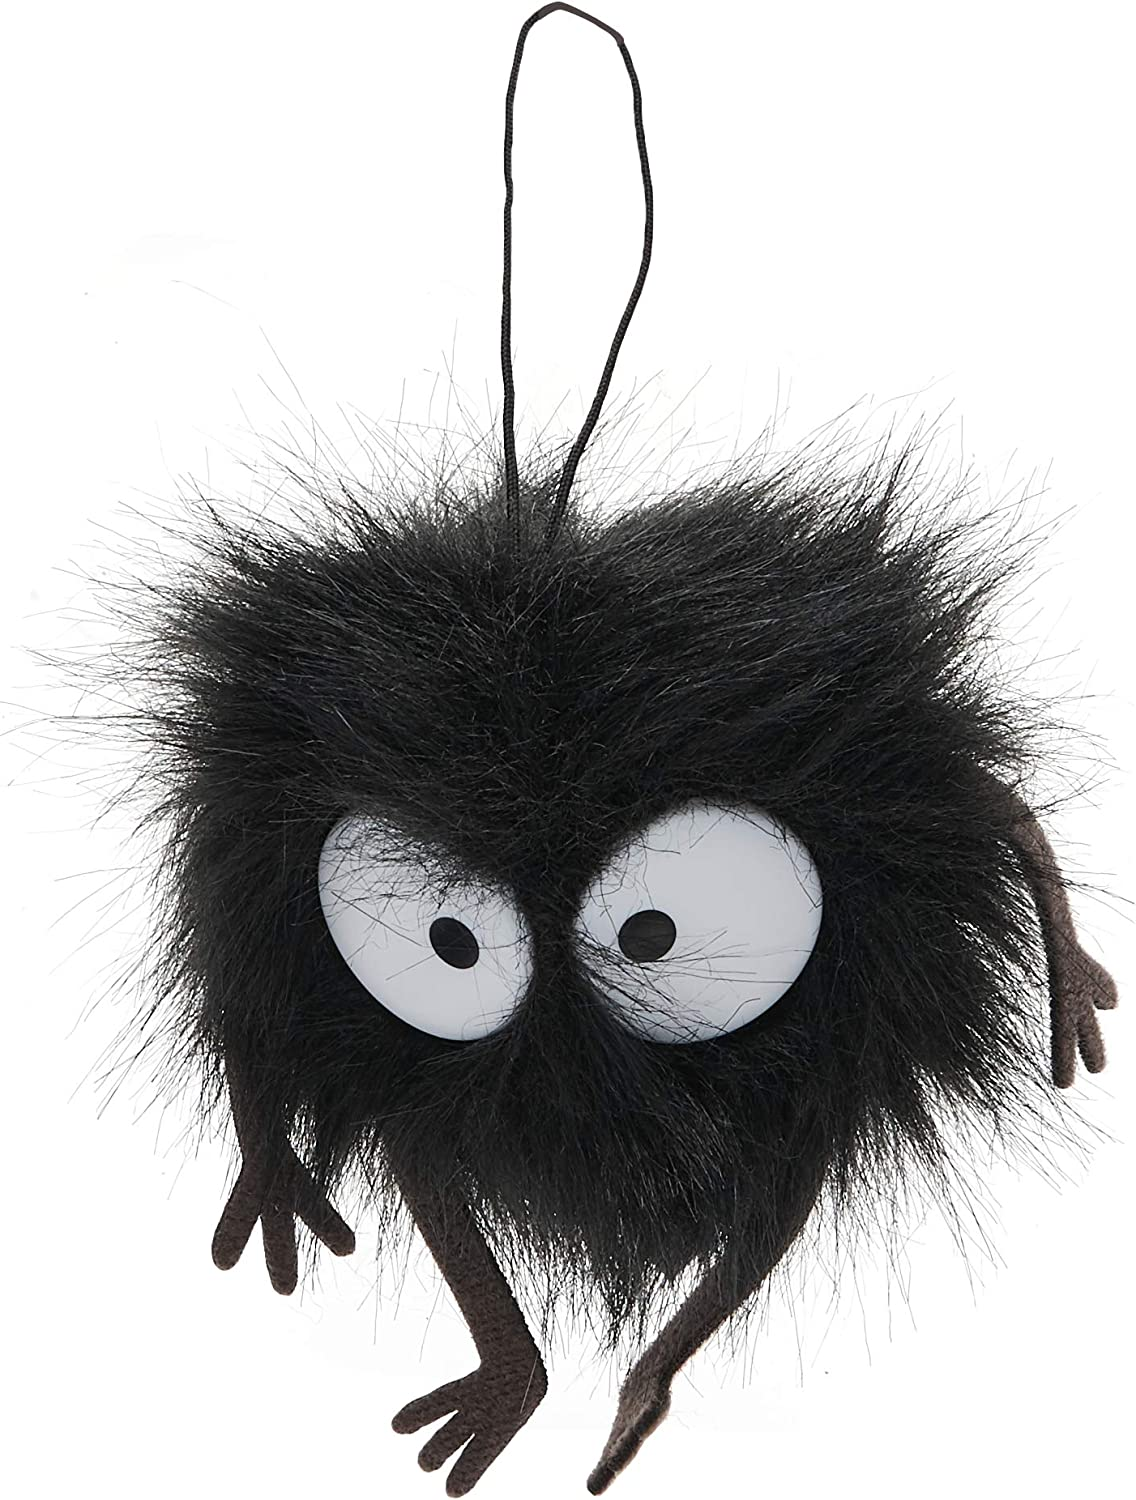 Amazon Com Gund Studio Ghibli Spirited Away Soot Sprite Window Cling Plush 1 5 4051581 Gund Toys Games